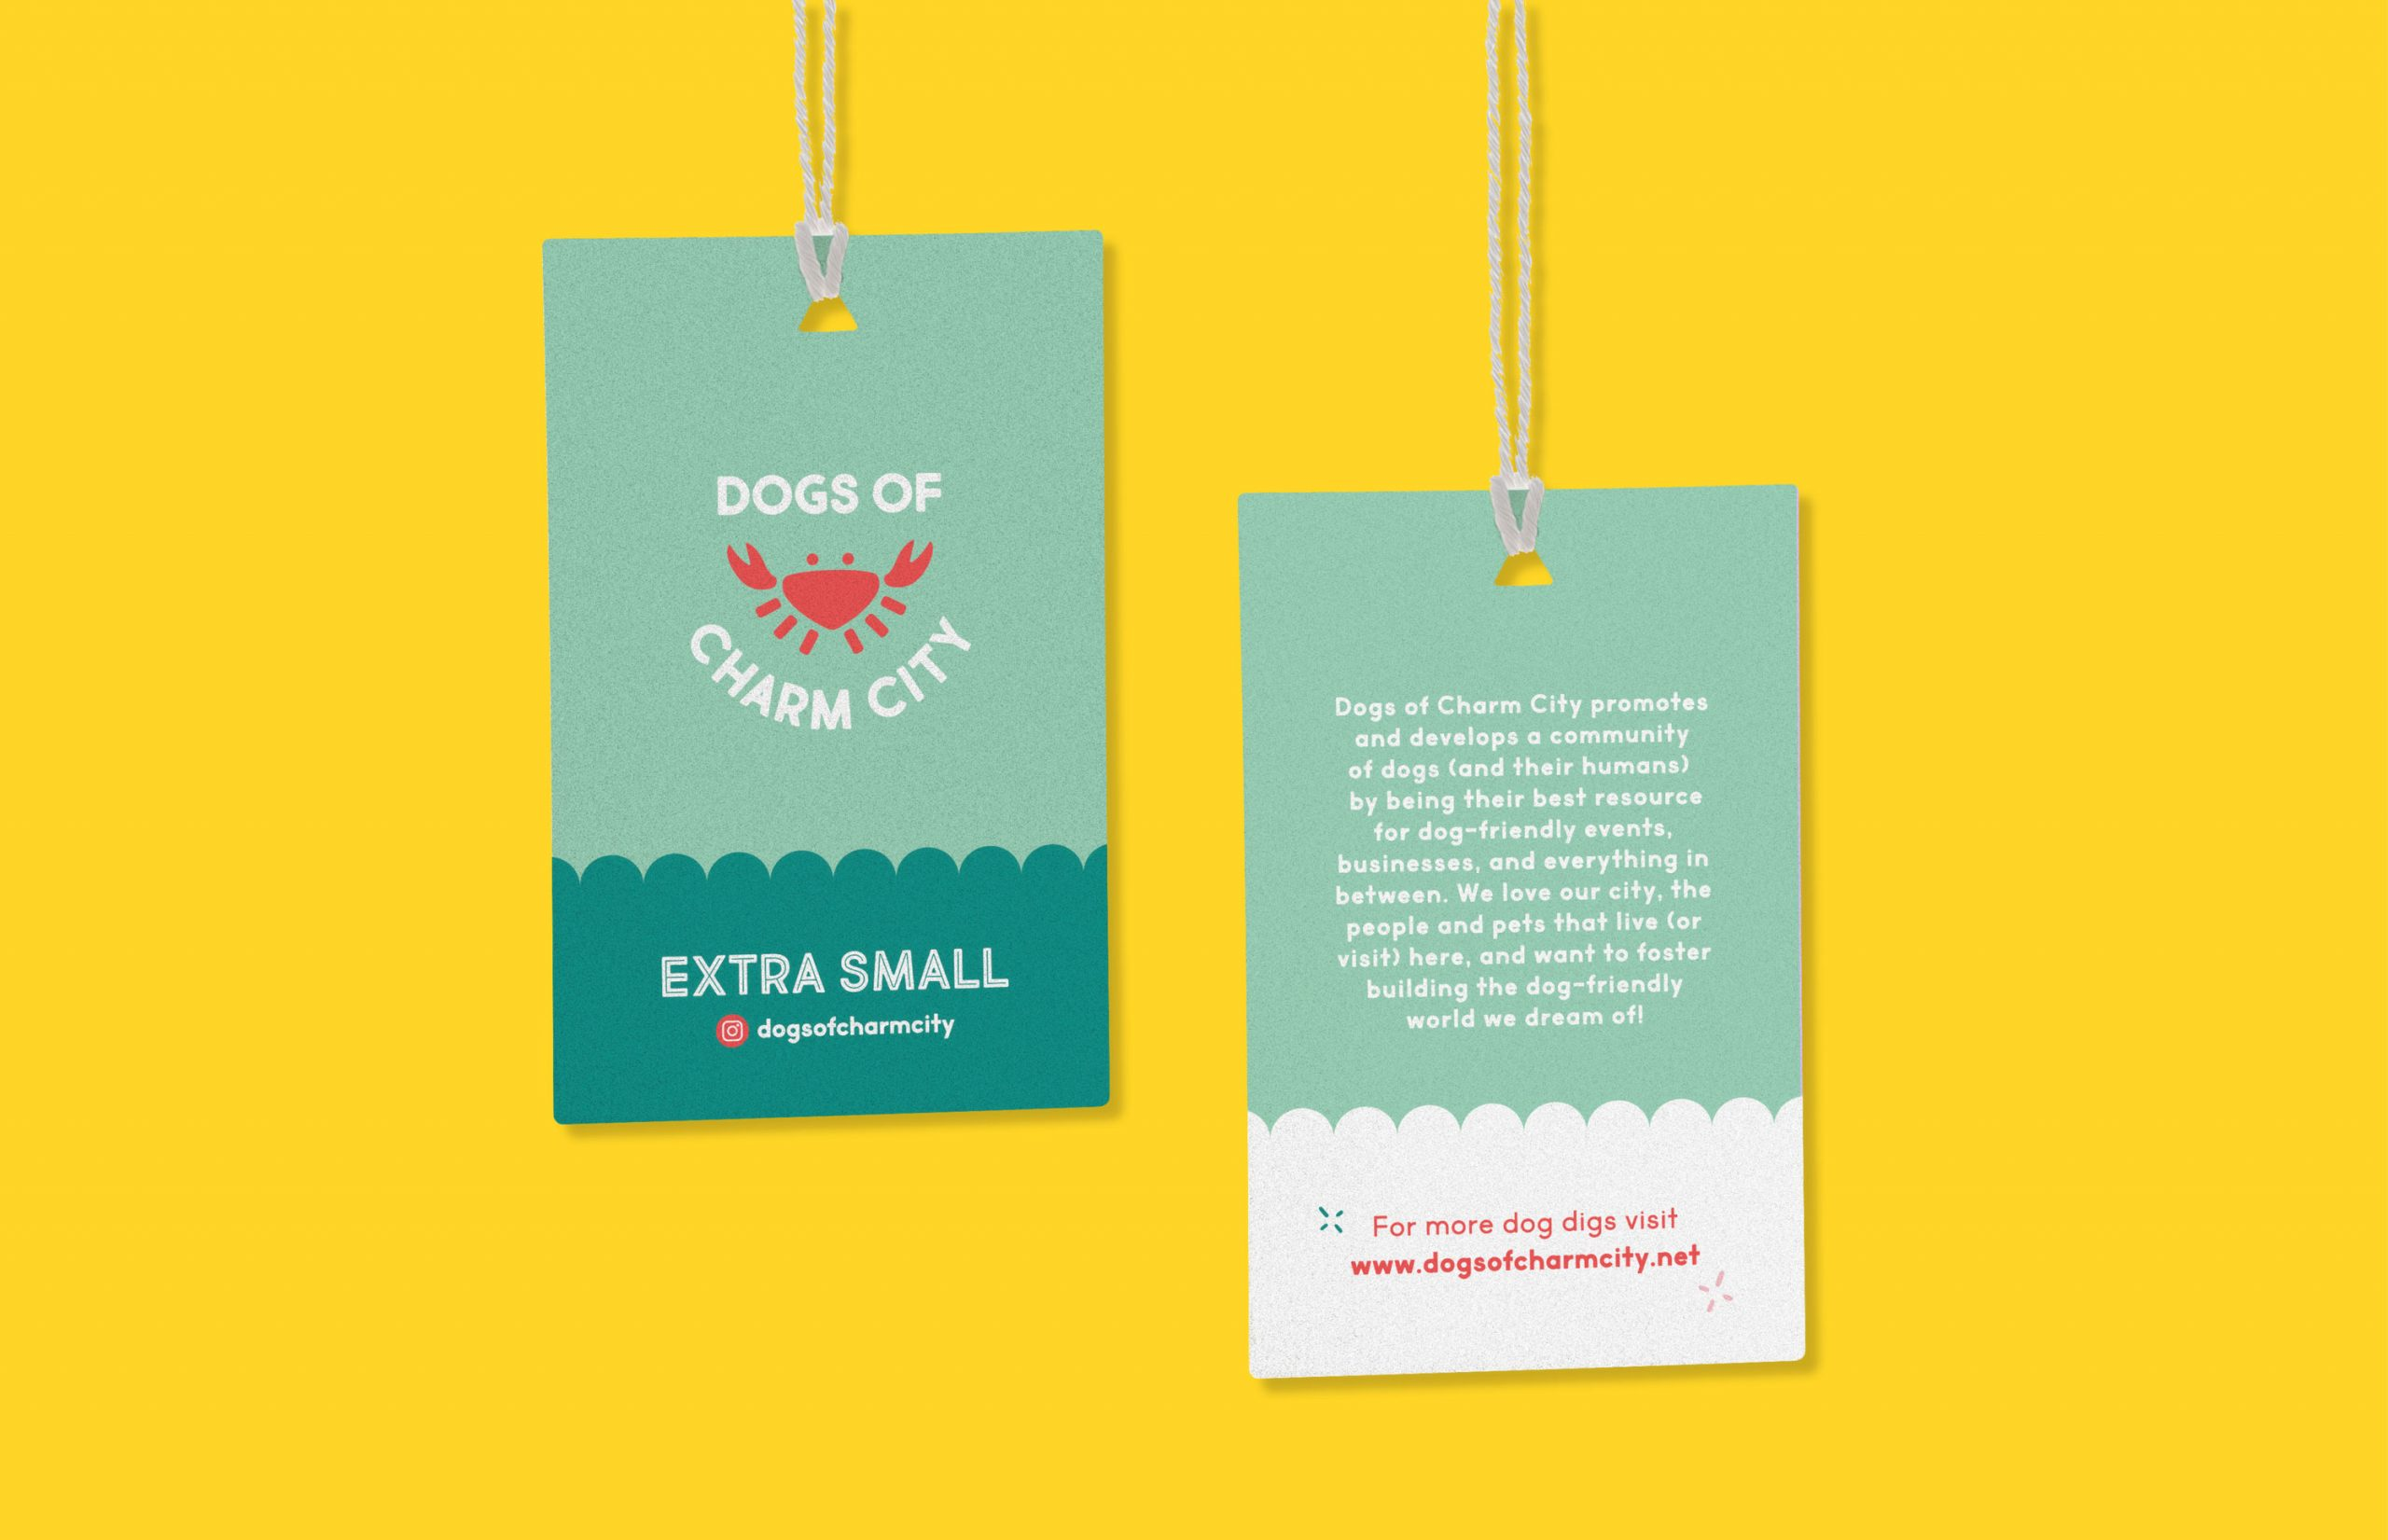 Dogs of Charm City logo tags